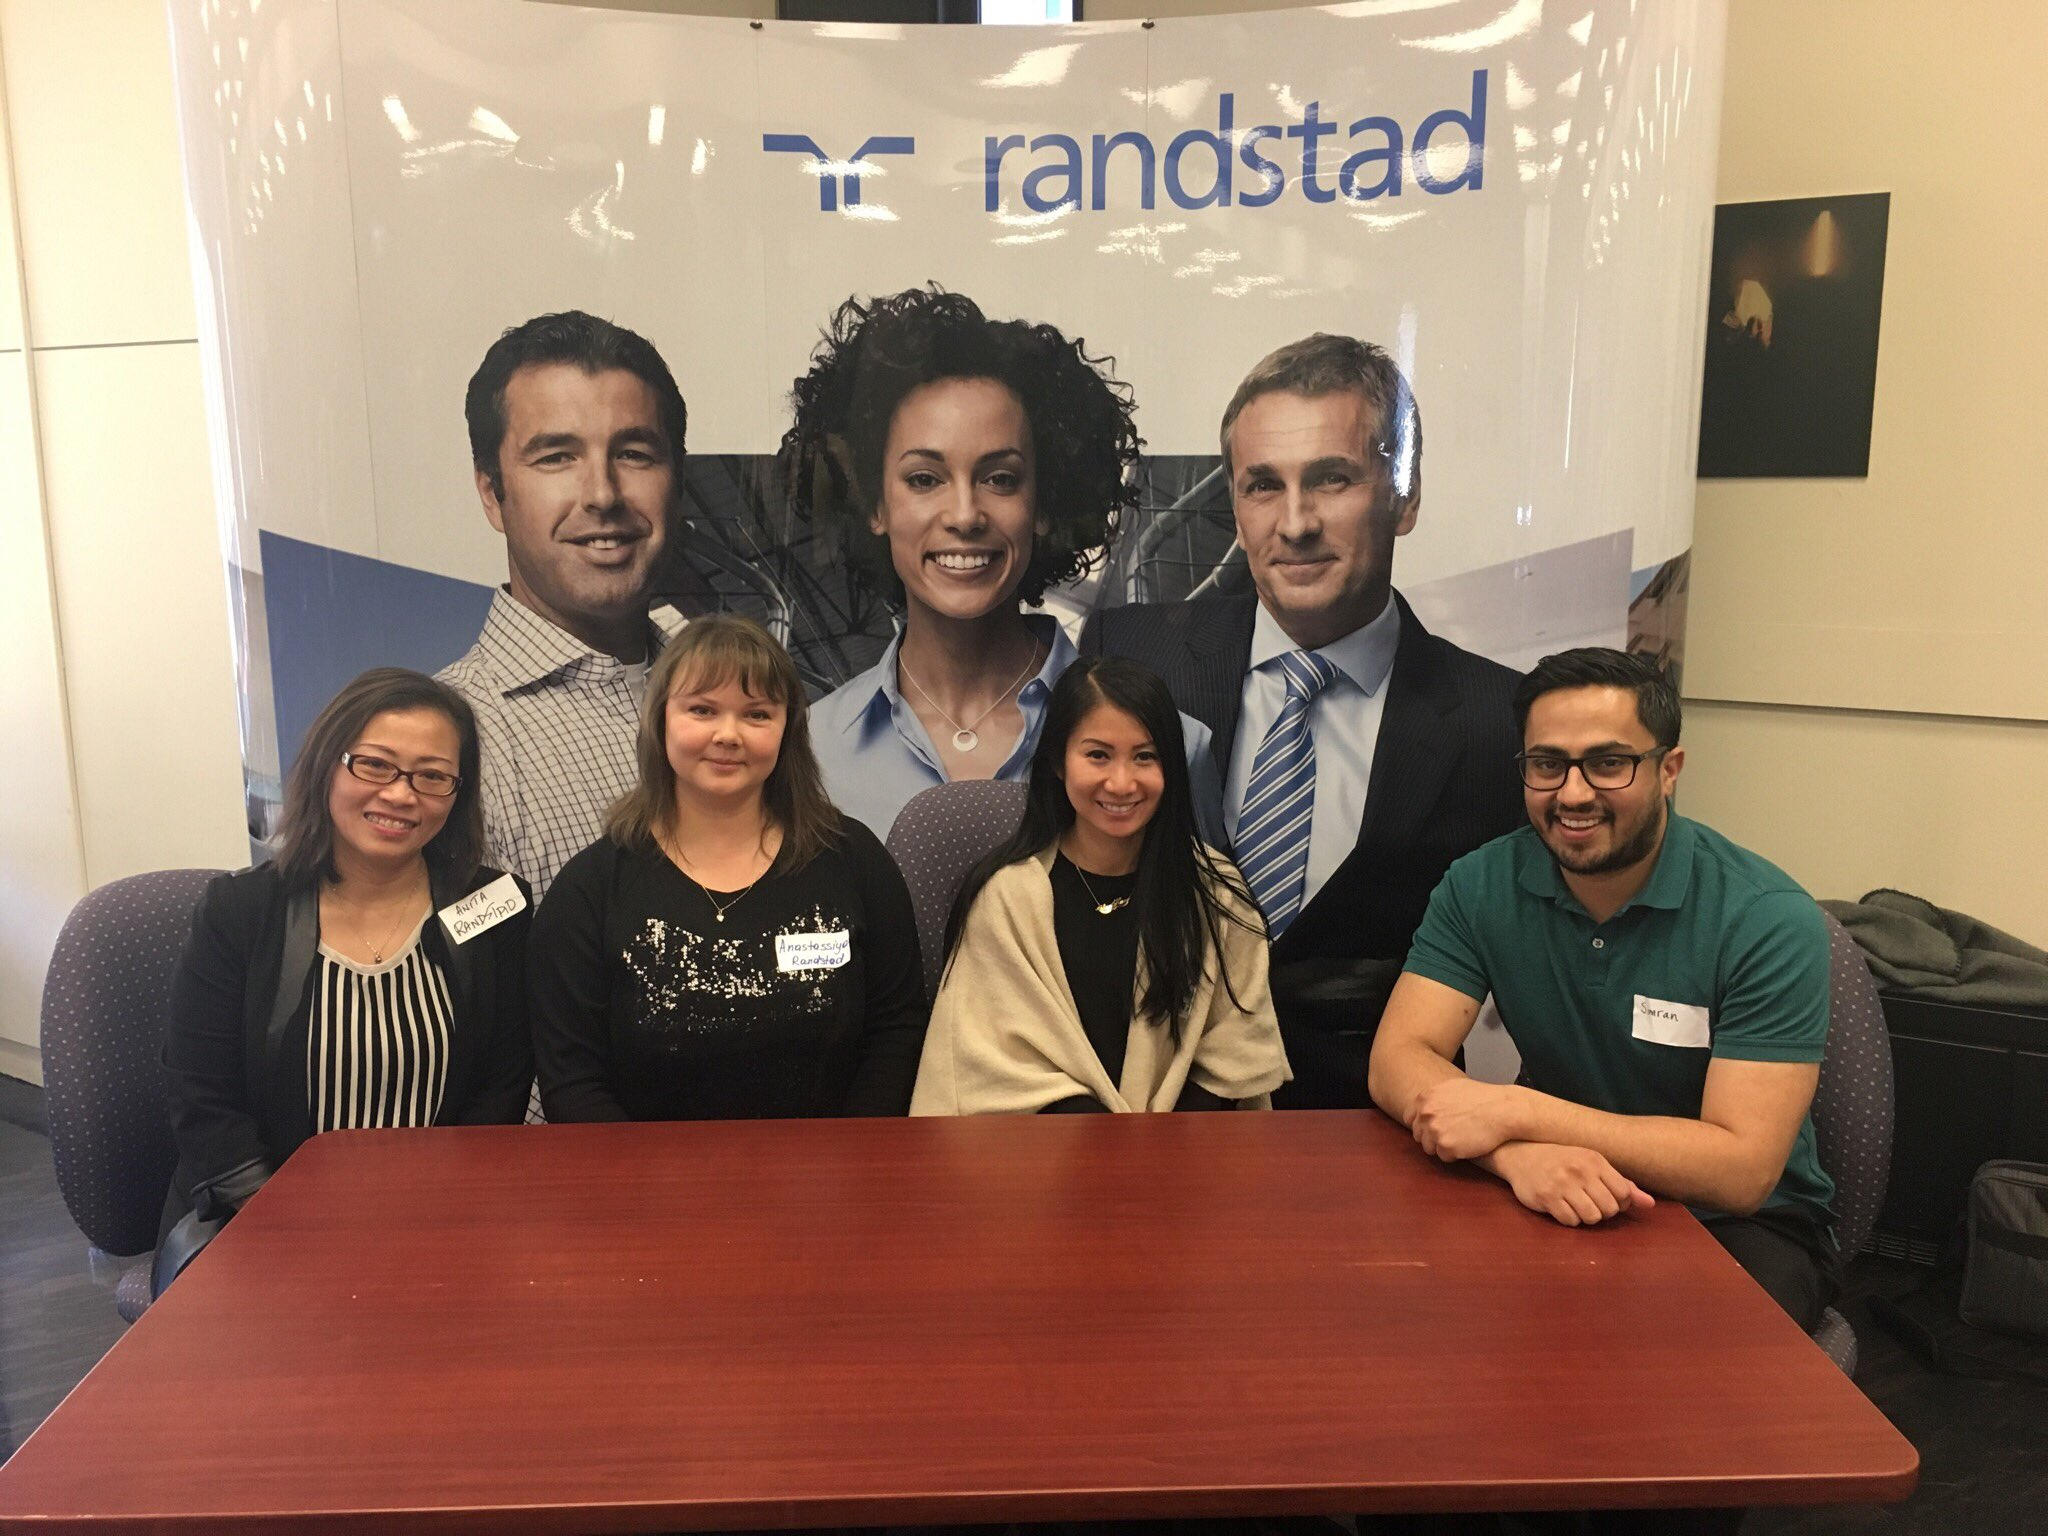 Come visit one of our sponsors @randstadtech at the 7th floor lounge to get more information on career opportunities #CodeAcrossTO https://t.co/cxg1AUrvML